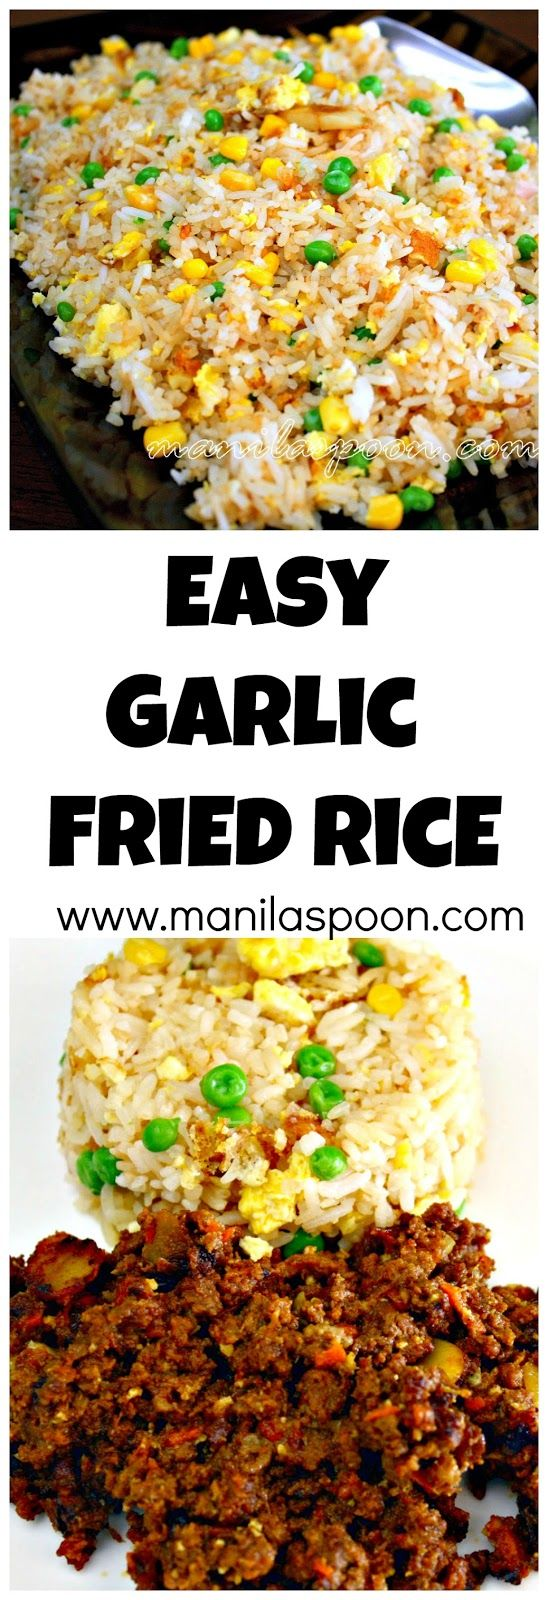 DesertRose,;,No need to throw left-over rice when you can make this easy and tasty garlic fried rice,;,